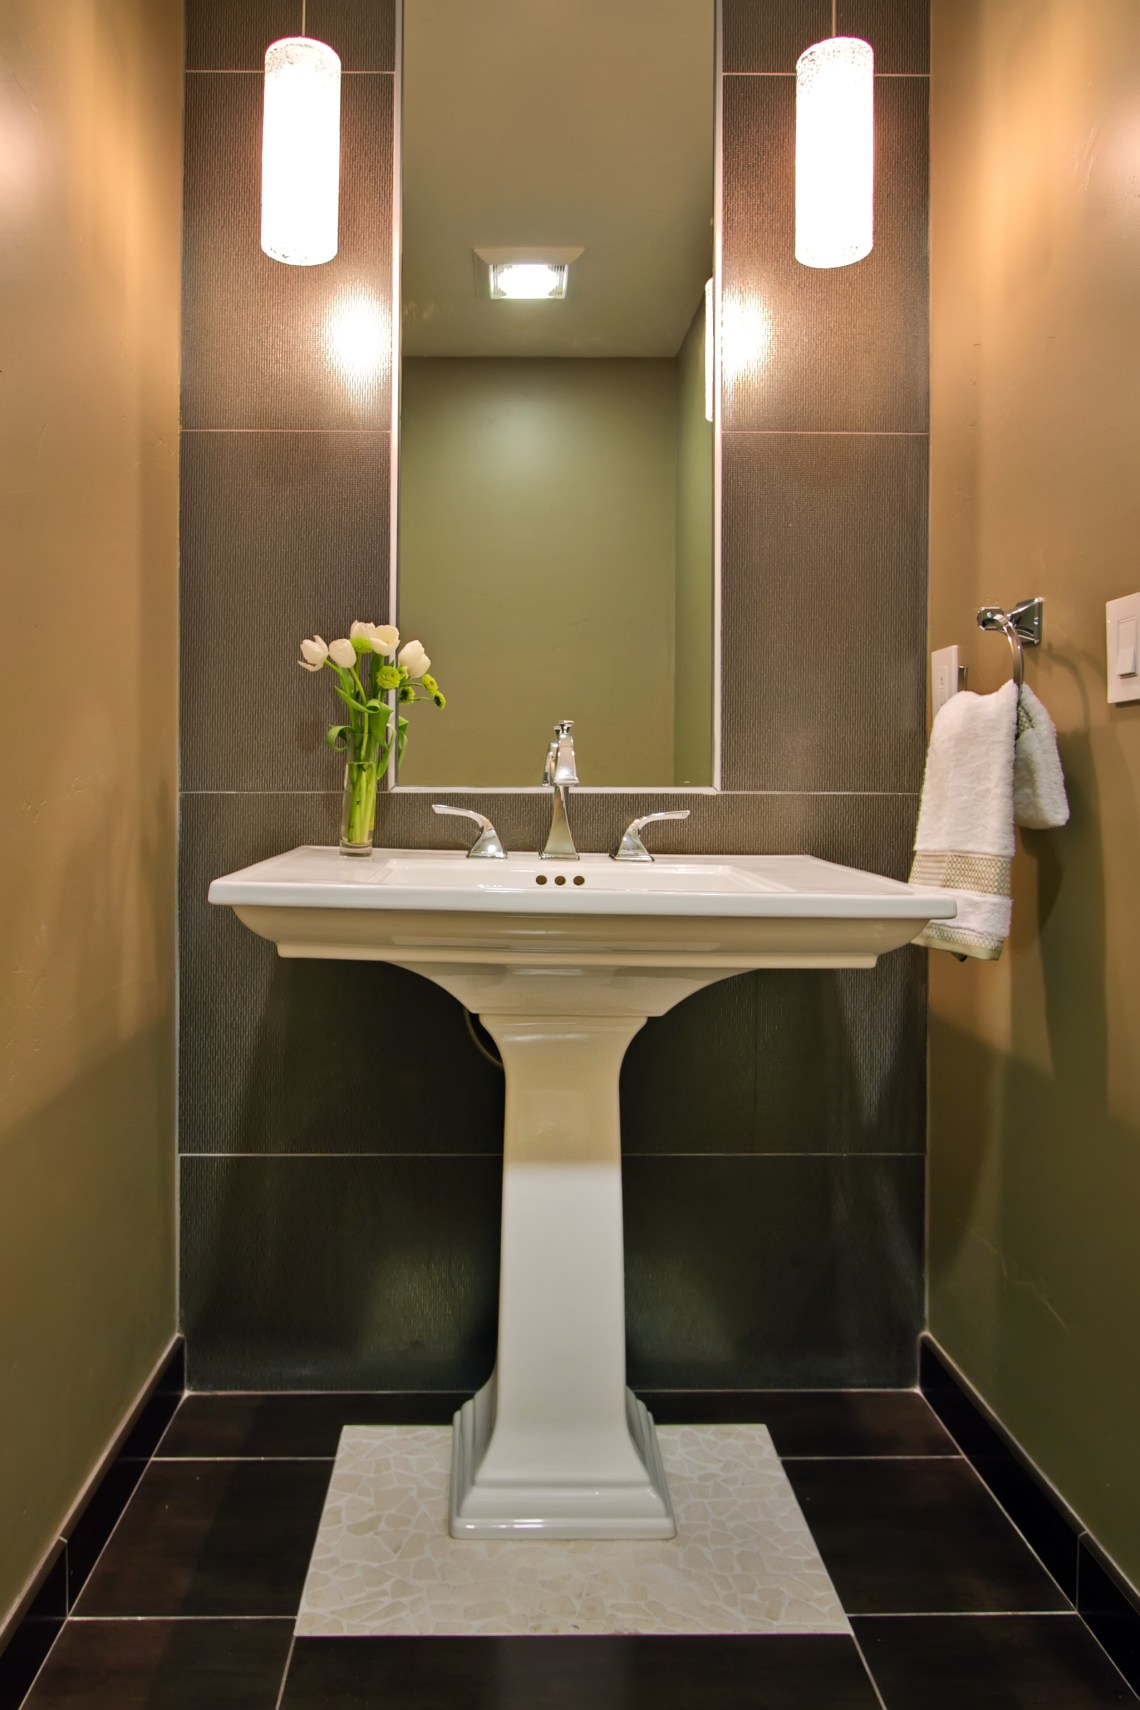 Big Ideas in Small Spaces: 3 Ways to Make Your Powder Room ...